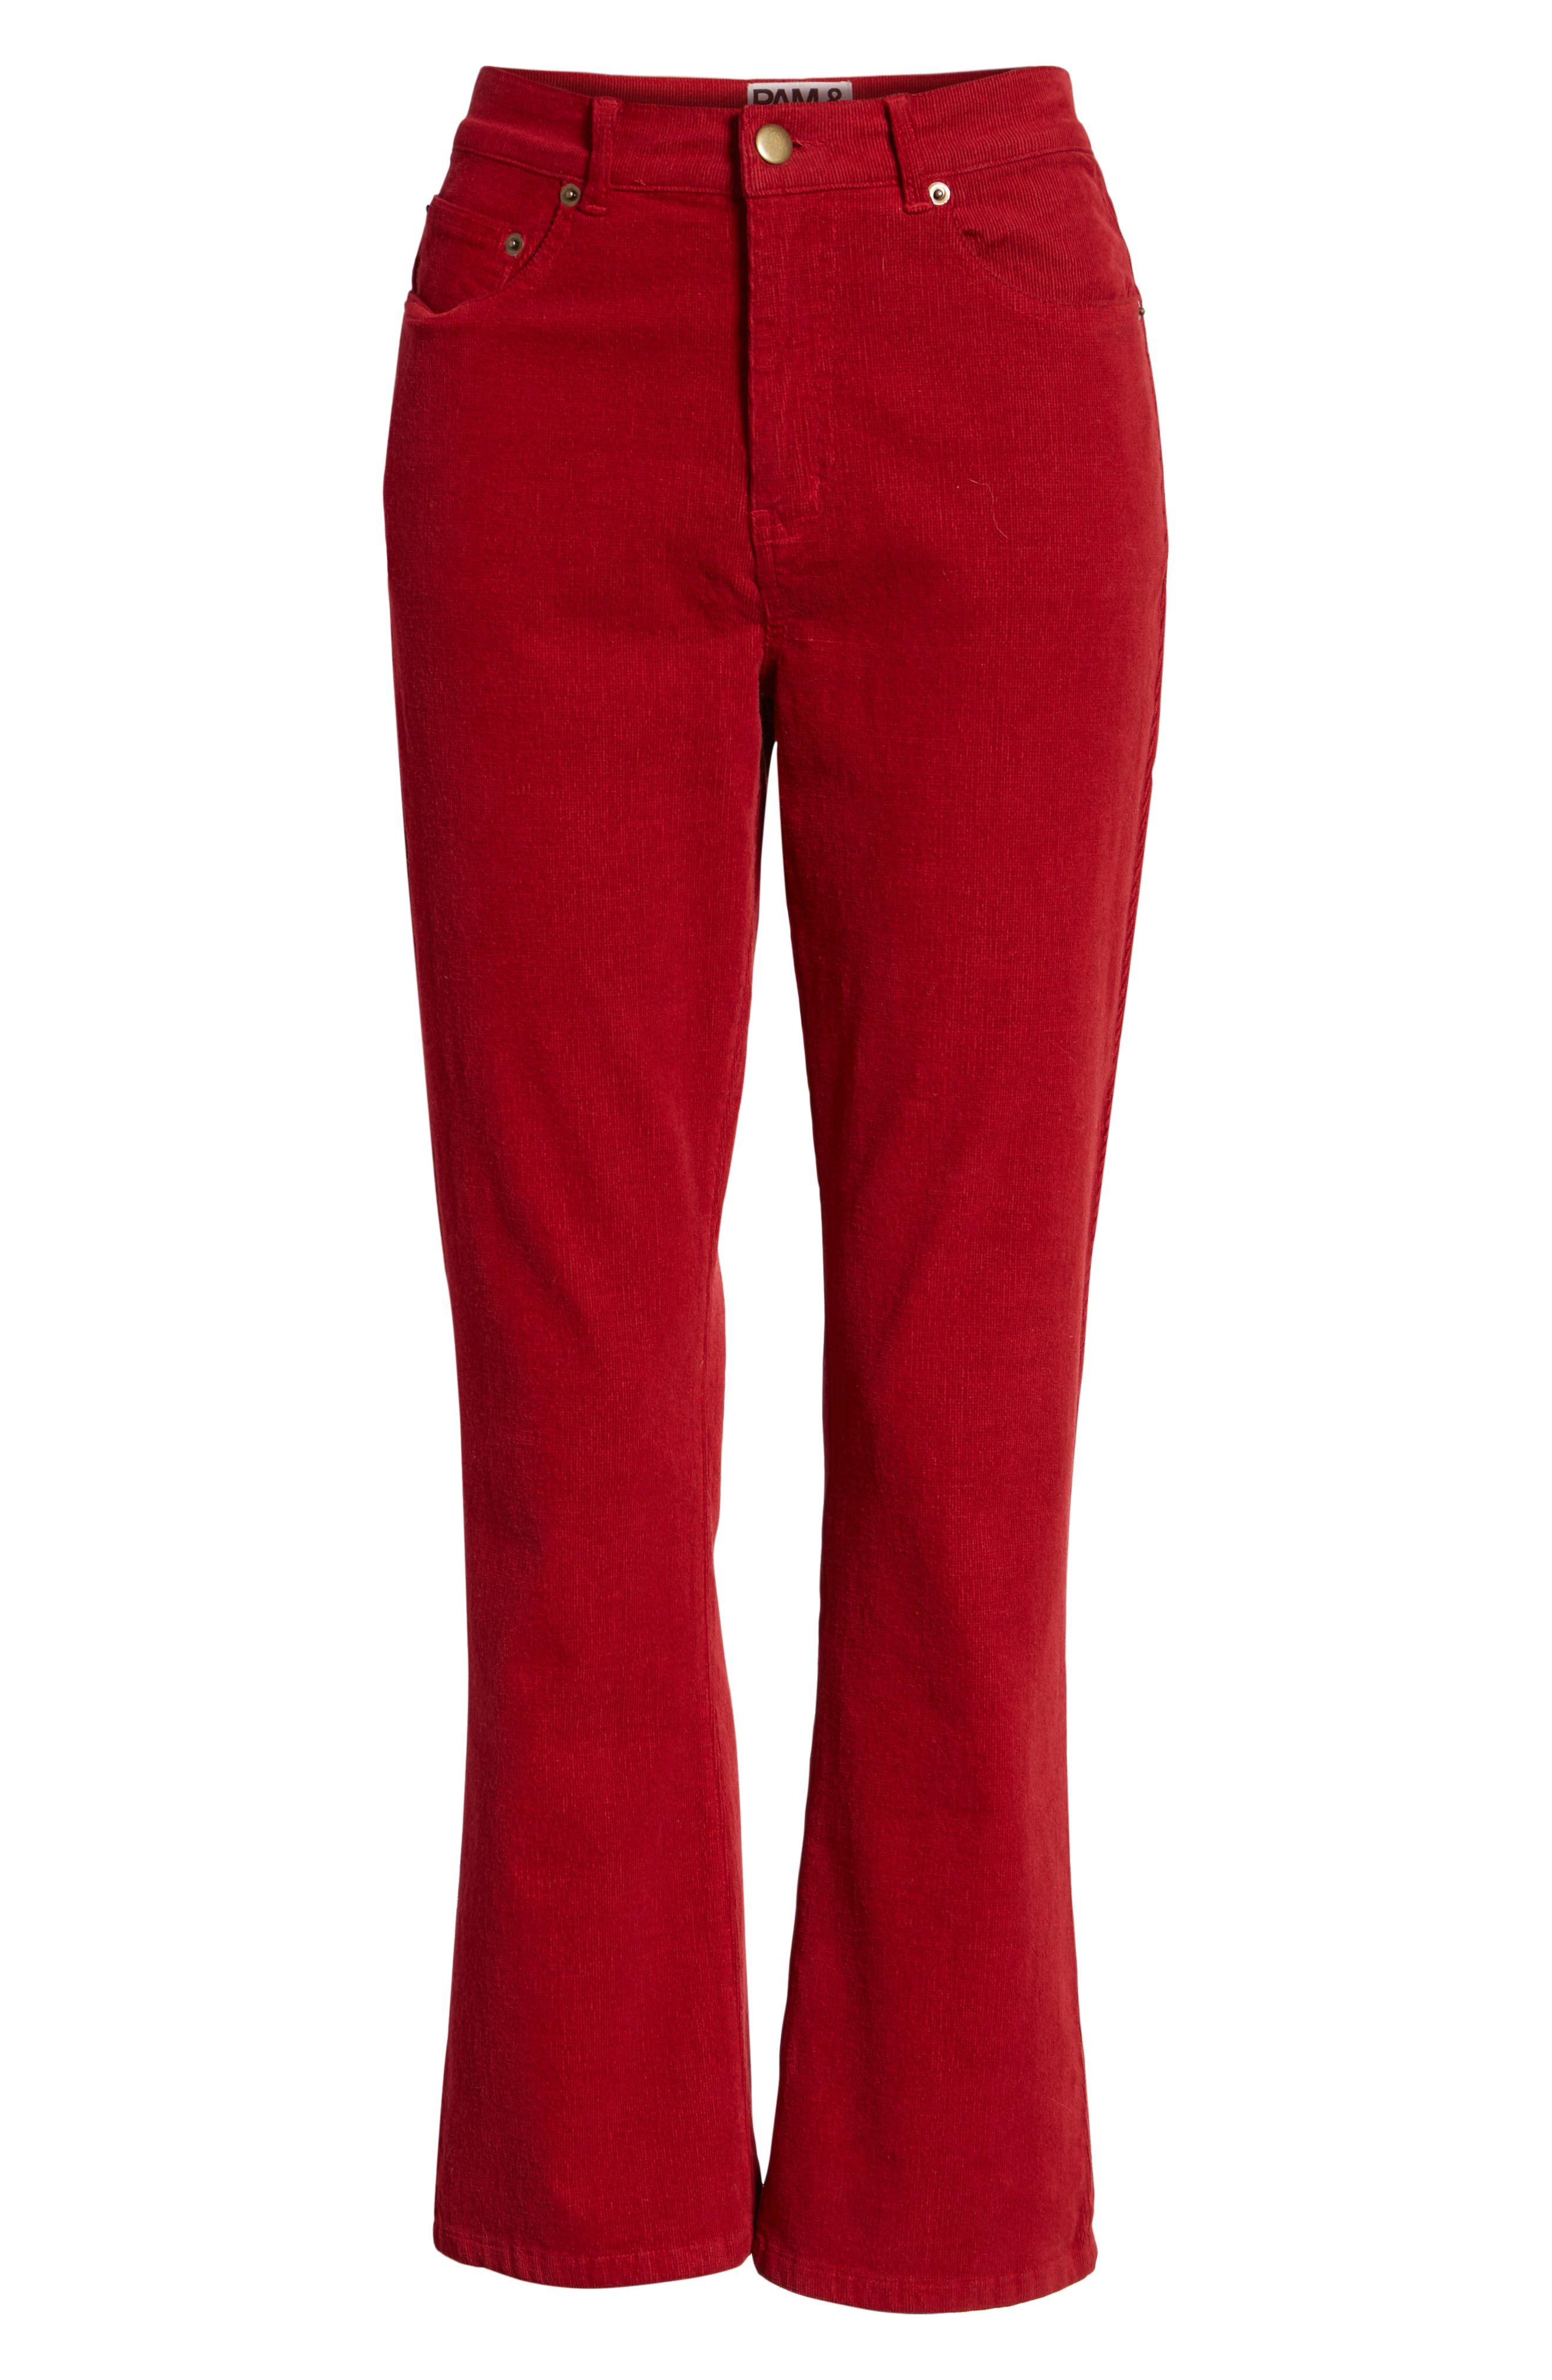 Corduroy Slim Crop Flare Pants,                             Alternate thumbnail 7, color,                             MINERAL RED